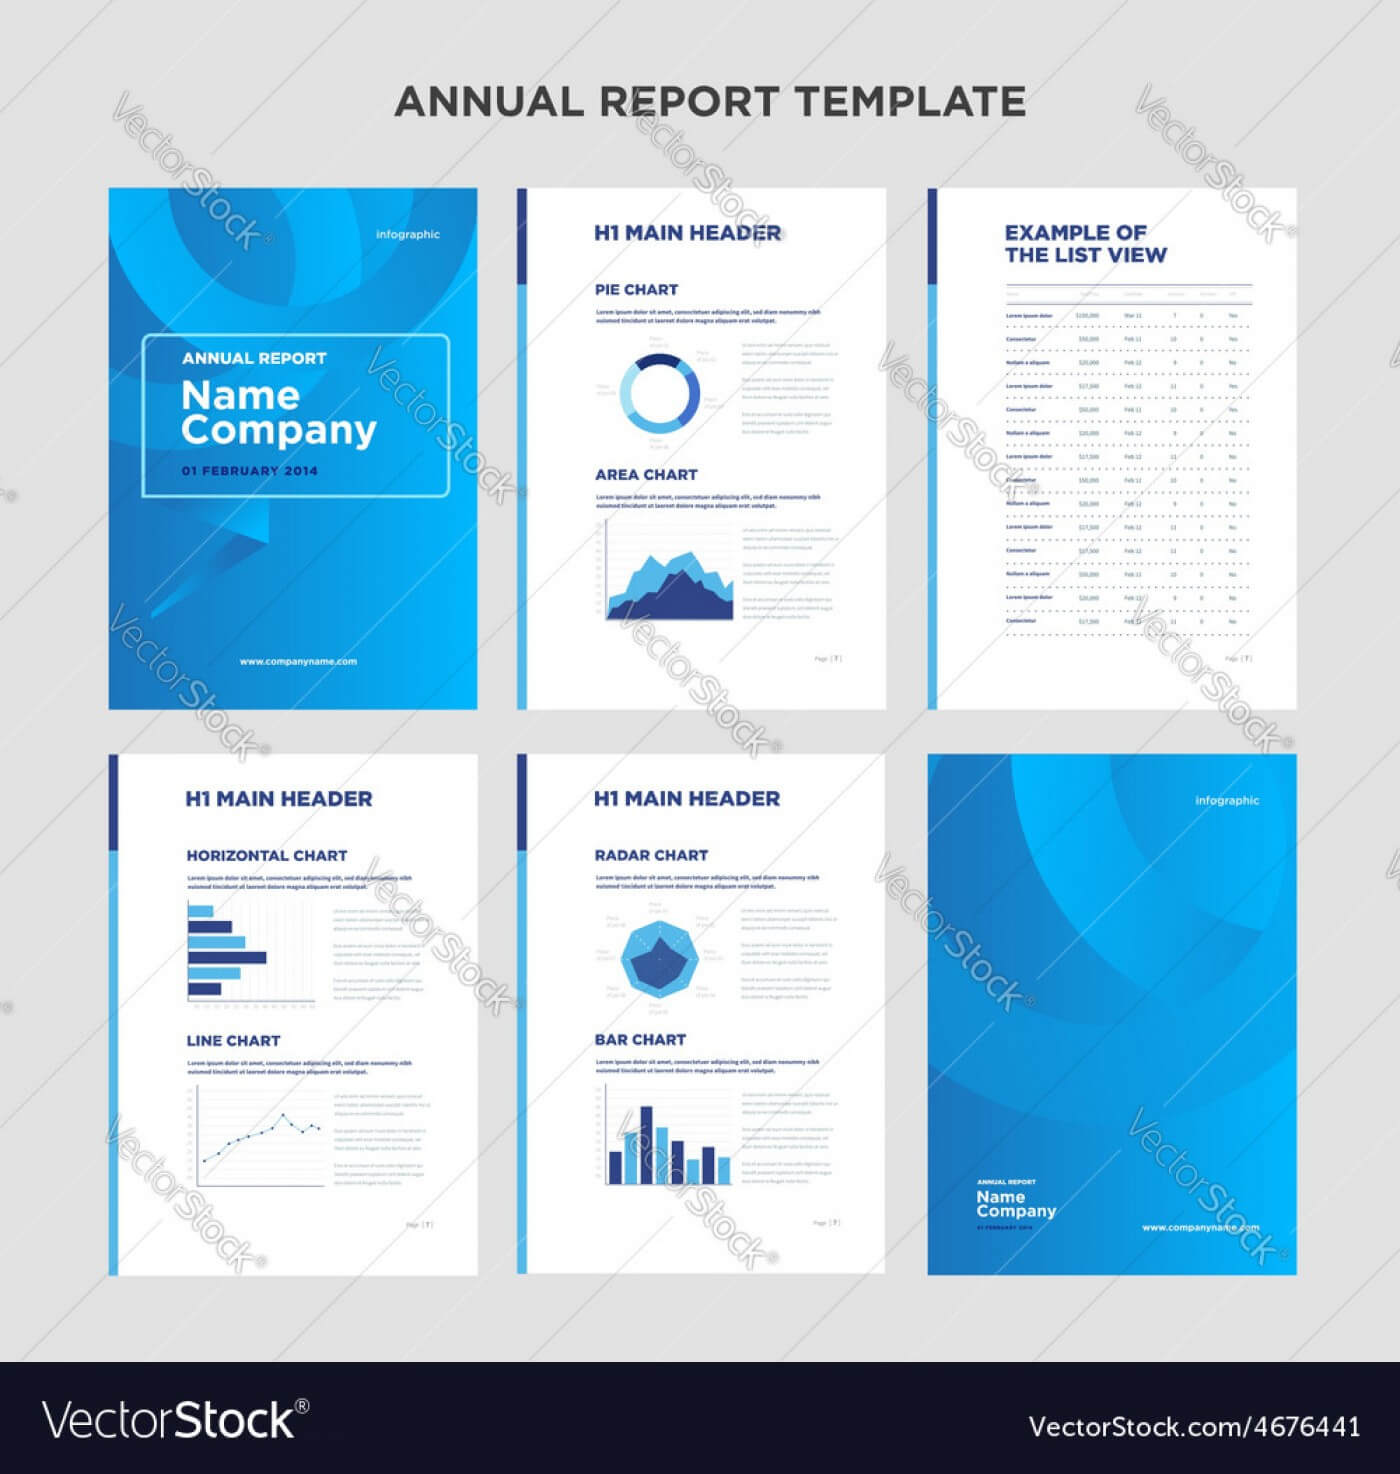 013 Annual Report Template Word Fearsome Ideas Free Within Word Annual Report Template